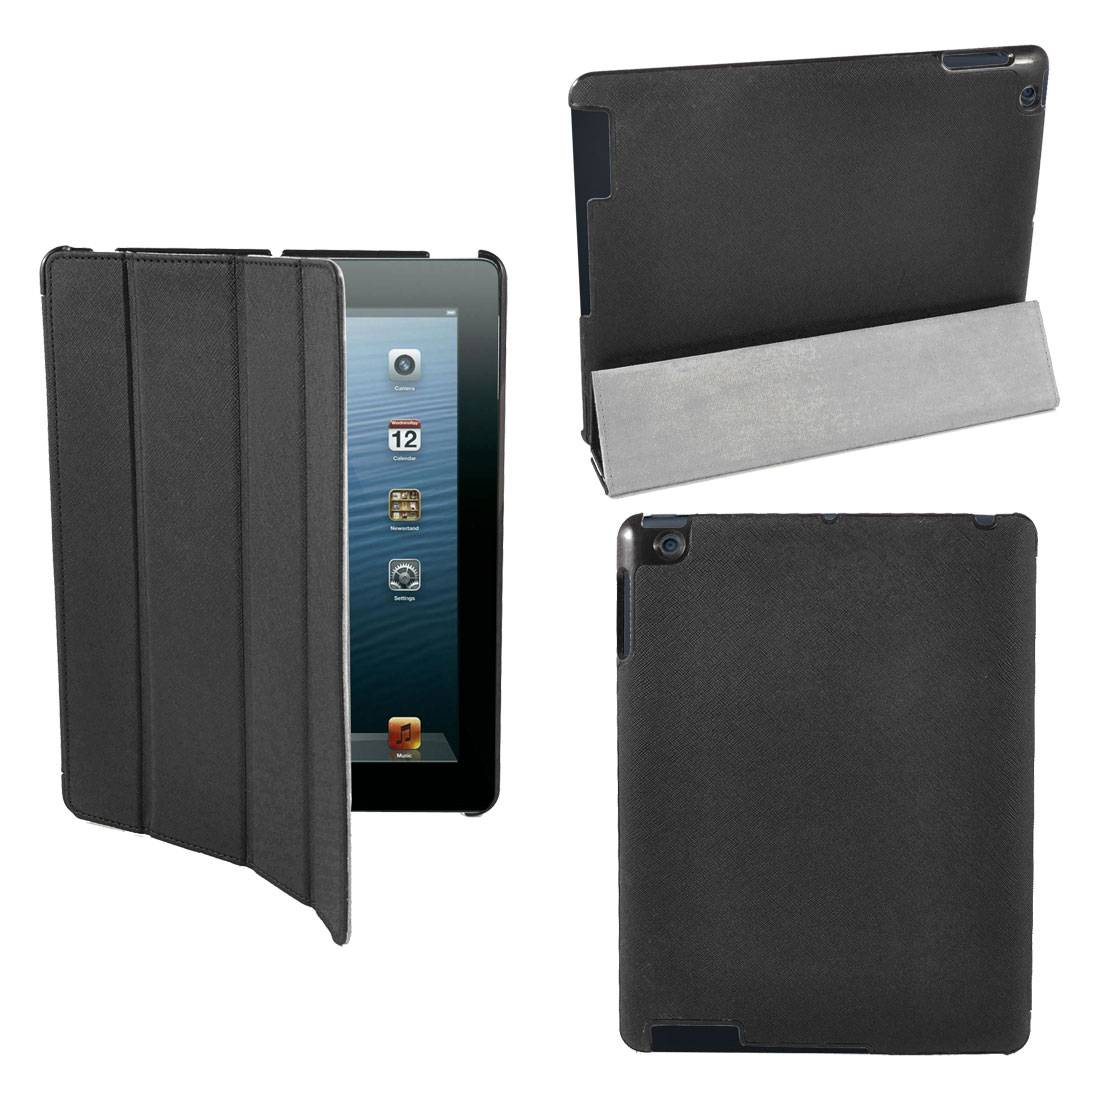 Black Textued PU Leather Folio Flip Wake Up Sleep Stand Case Cover for iPad 2 2nd